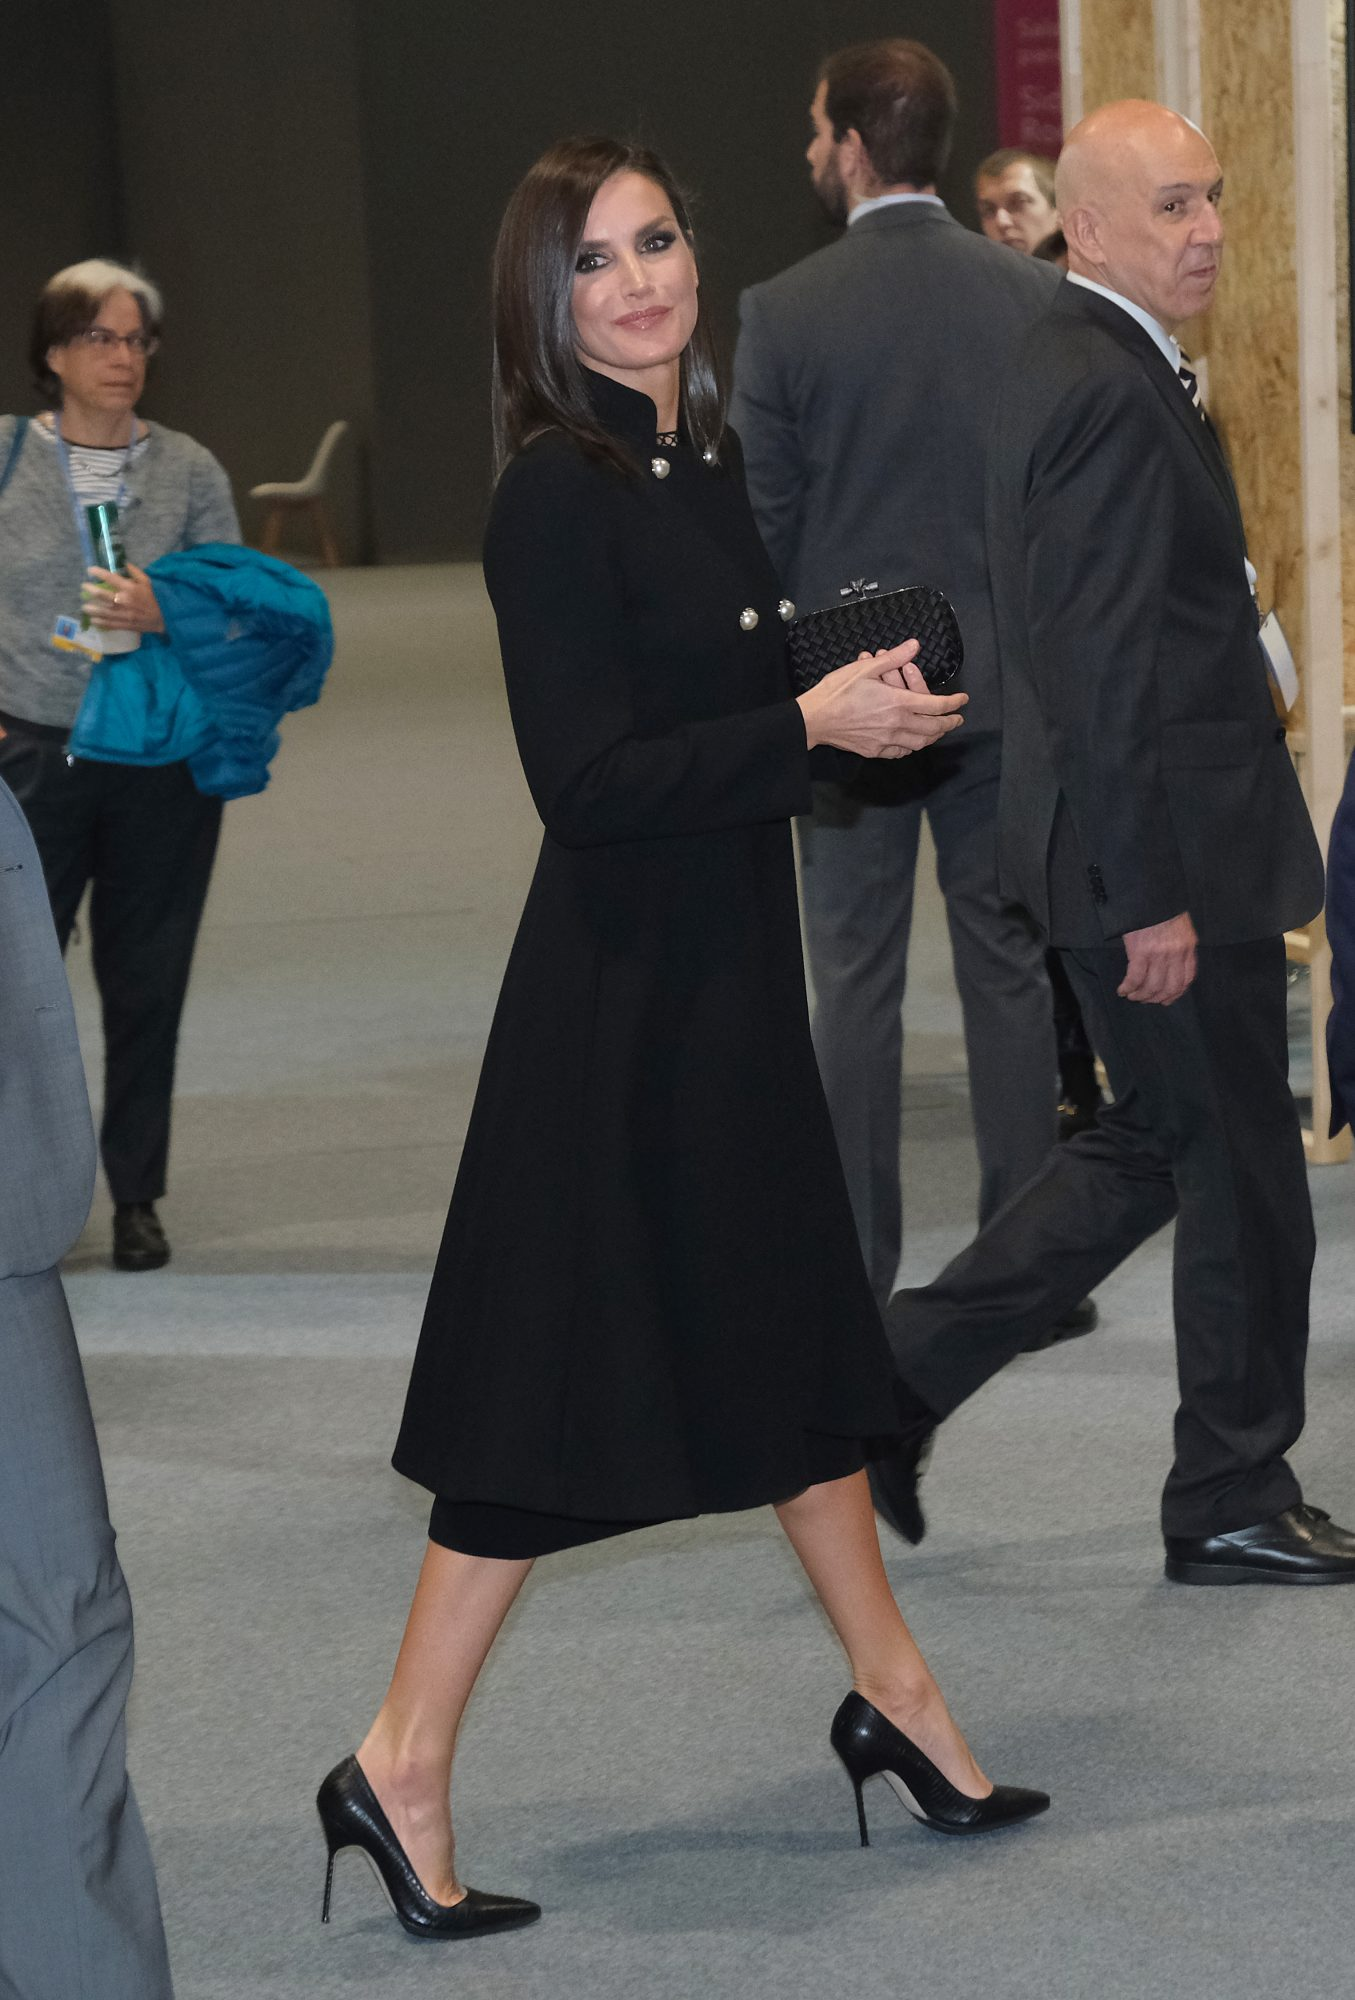 Queen Letizia Of Spain Attends The COP25 In Madrid